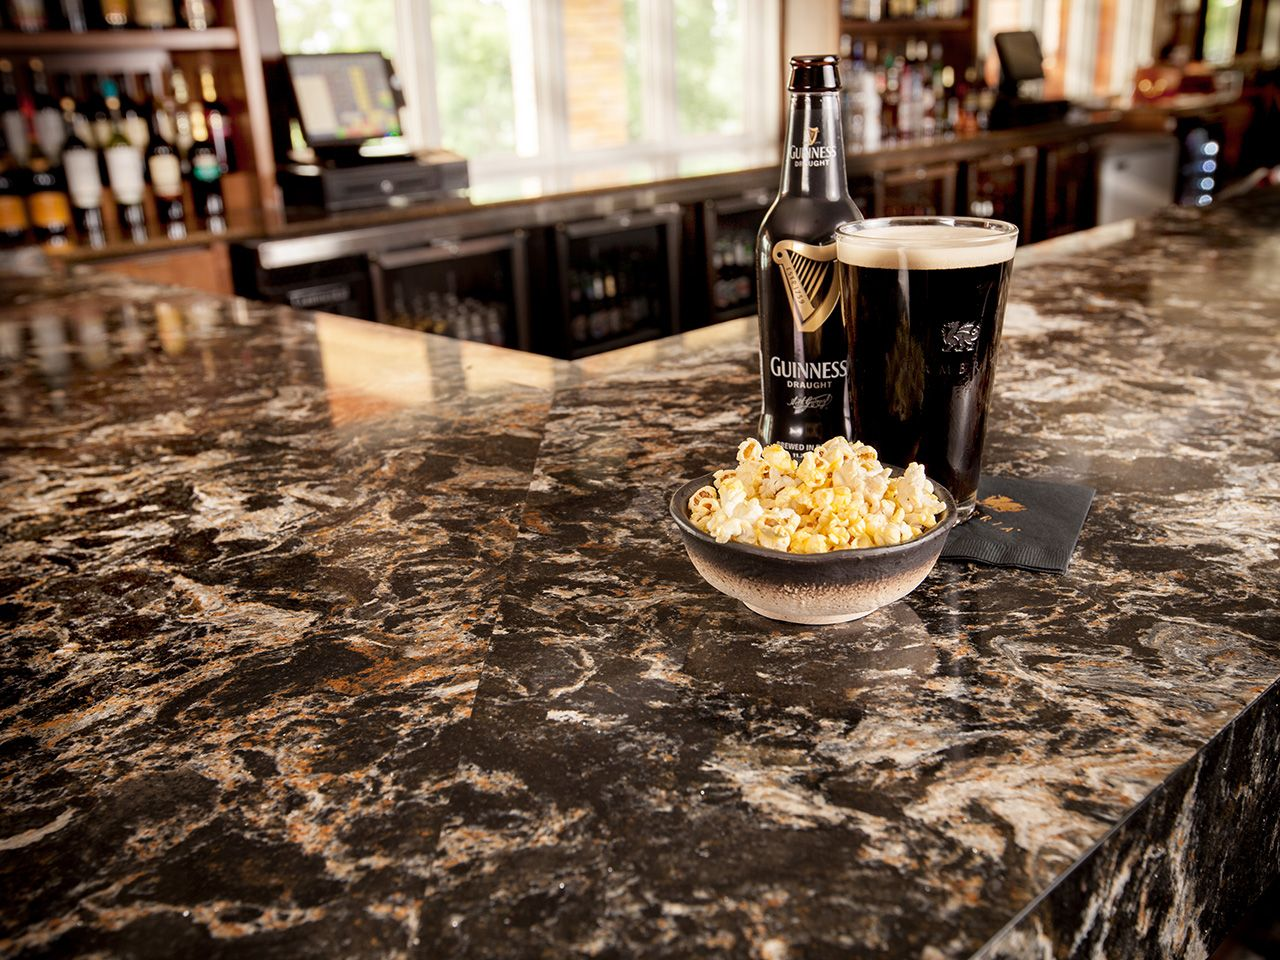 Cambria clyde kitchen and bathroom countertop color - Update Your Kitchen Or Bath With Natural Stone Solid Wood Or Recycled Glass Mosaic Countertops We Offer Custom Countertops For All Applications